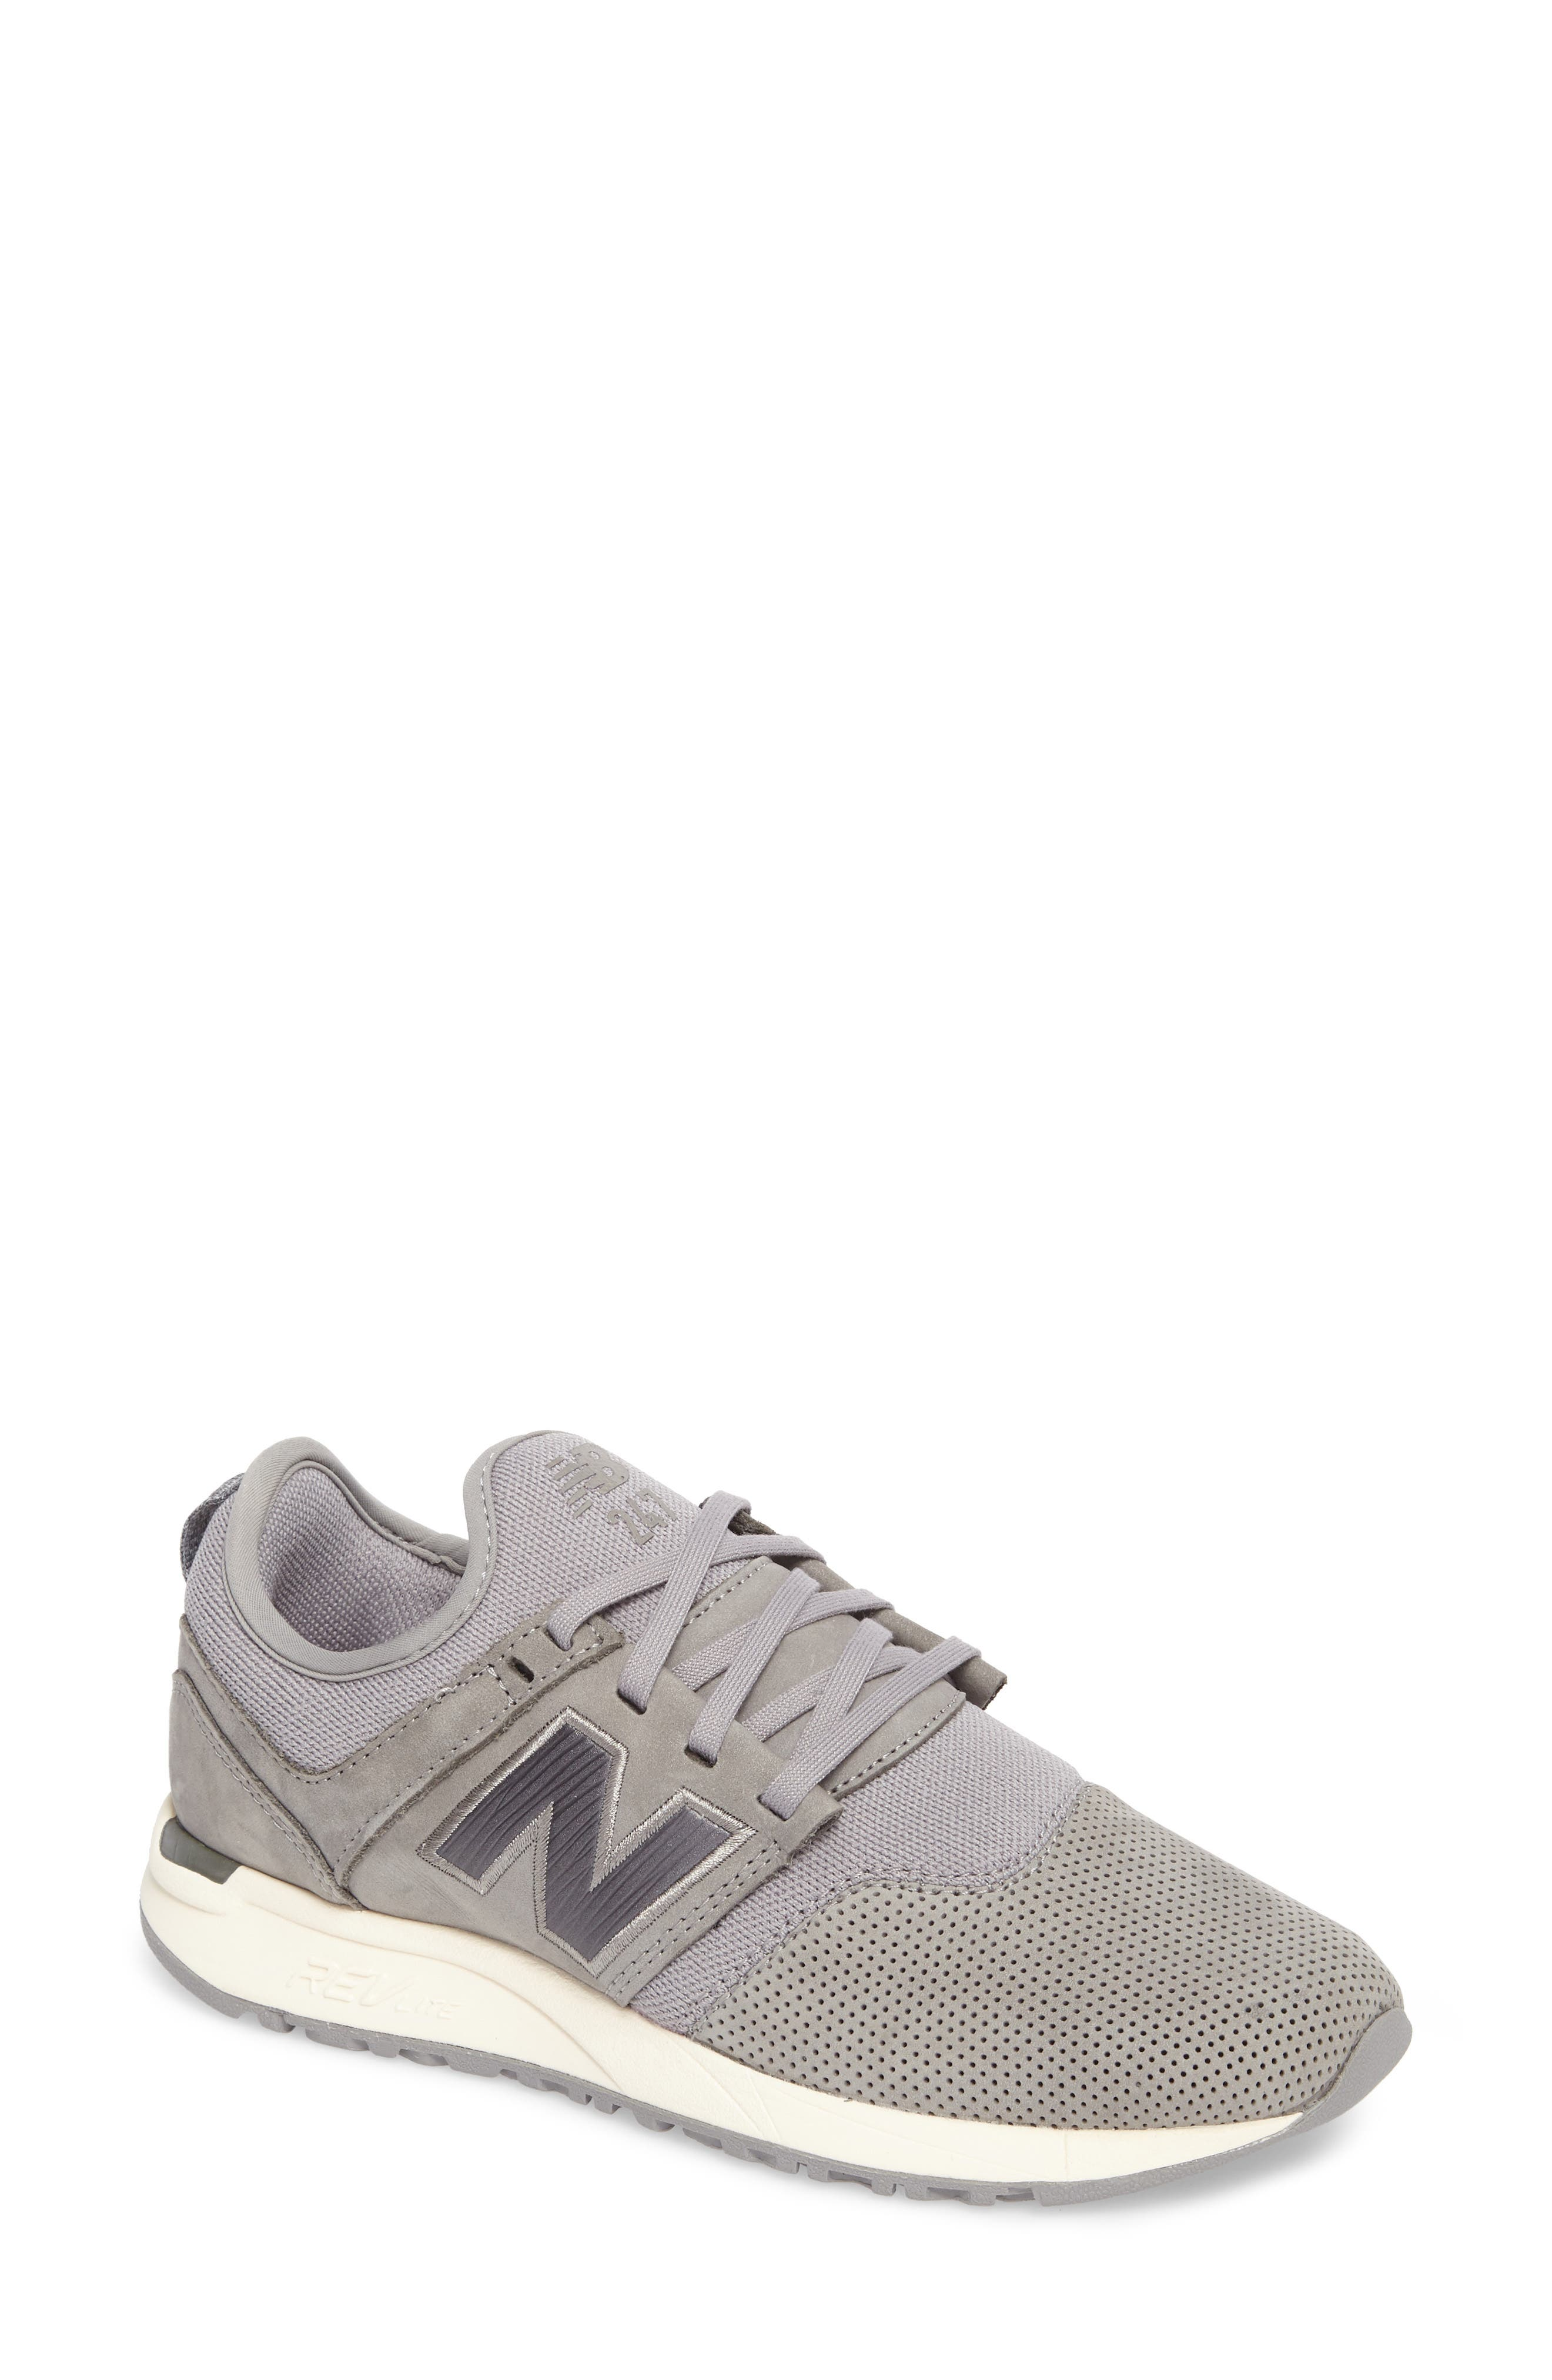 Sport Style 247 Sneaker,                         Main,                         color, Marblehead